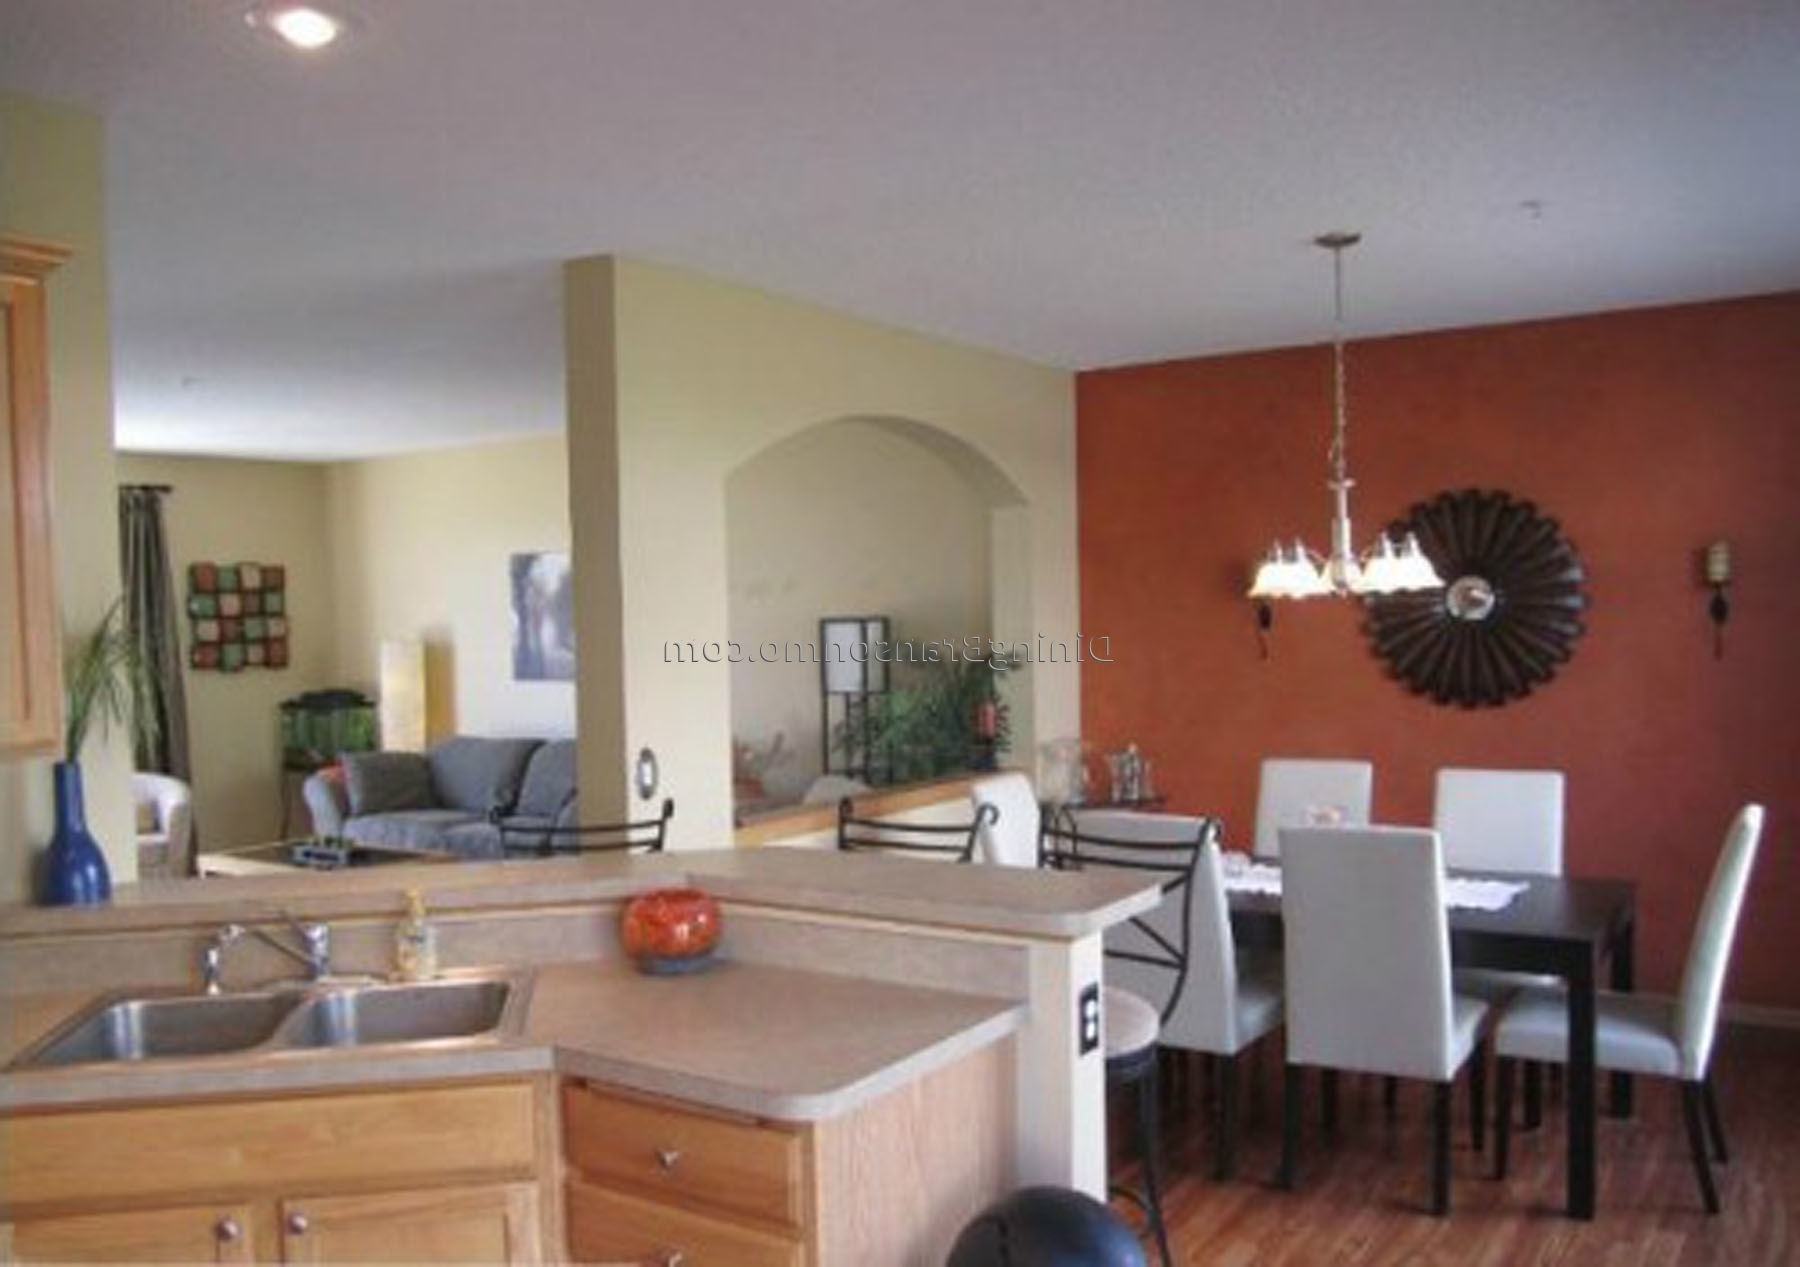 Well Known Wall Colors And Accents Regarding Uncategorized (View 15 of 15)